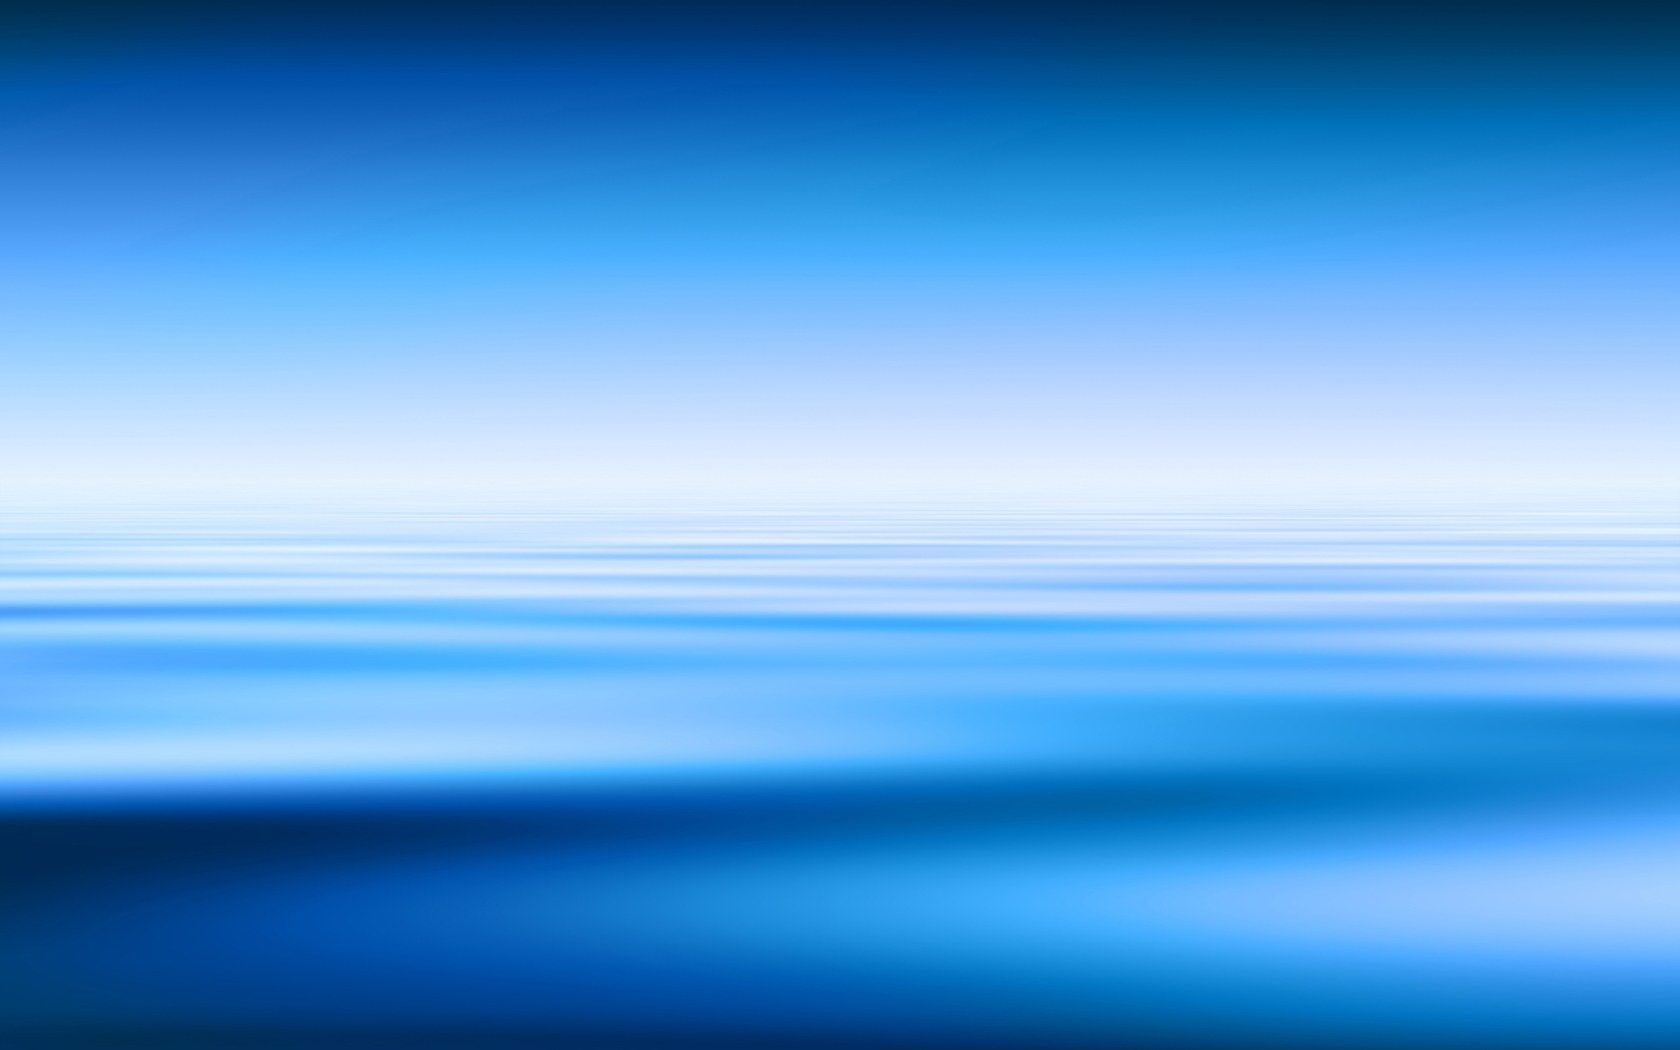 Blue Water Abstract Backgrounds